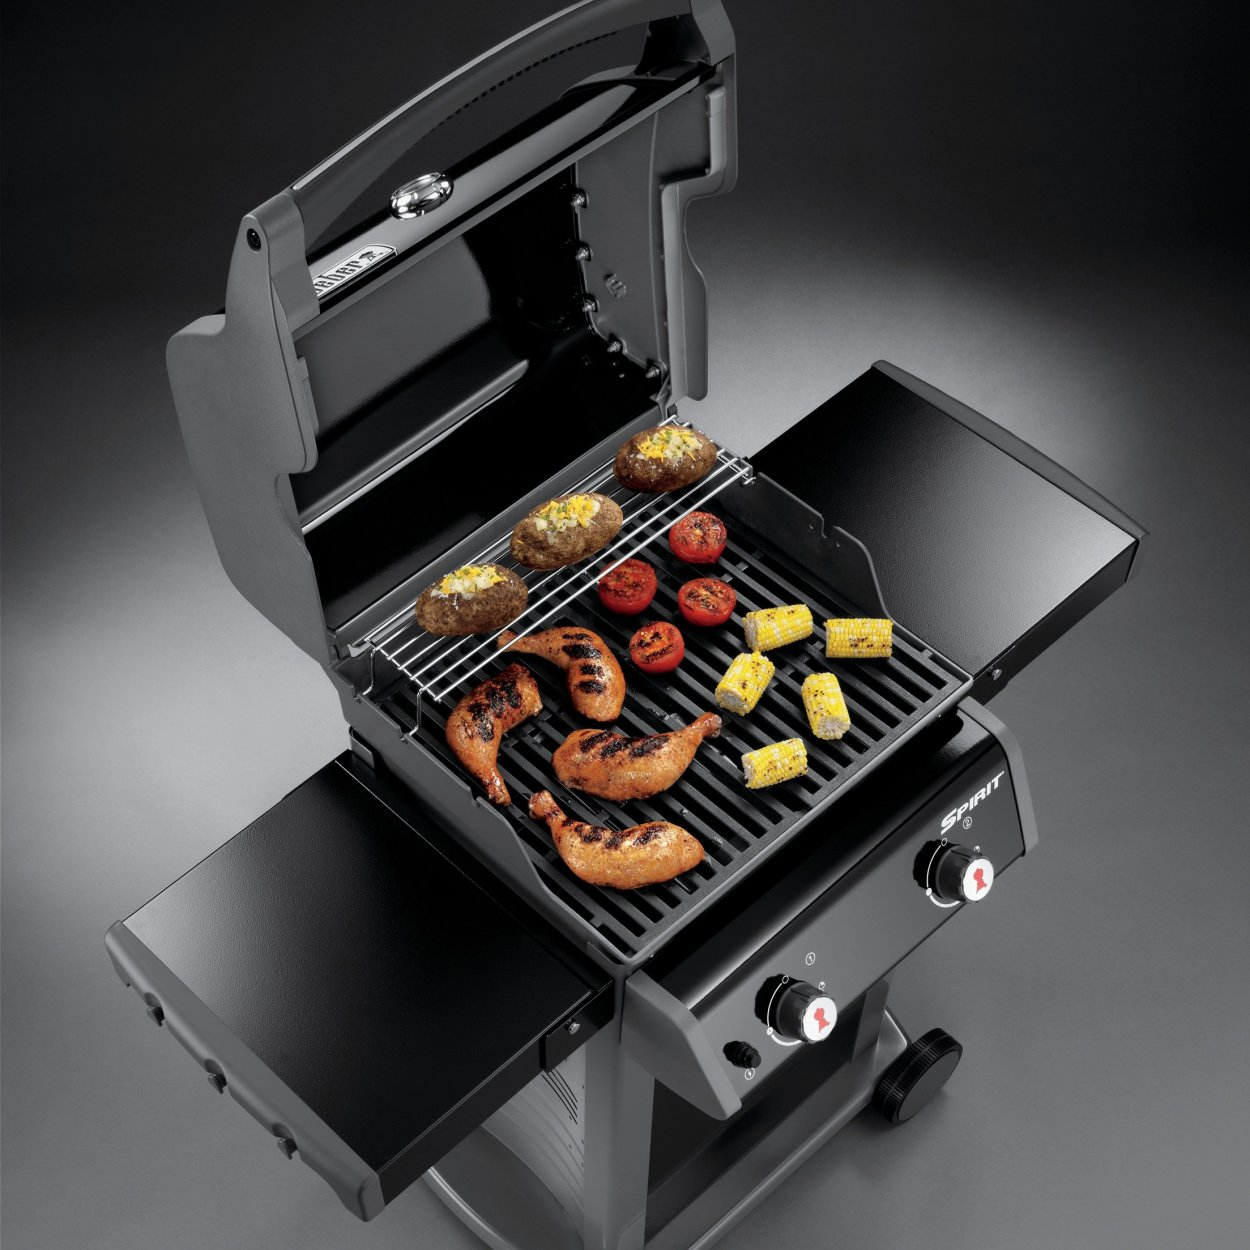 weber spirit e 310 gas grill review about barbecue. Black Bedroom Furniture Sets. Home Design Ideas